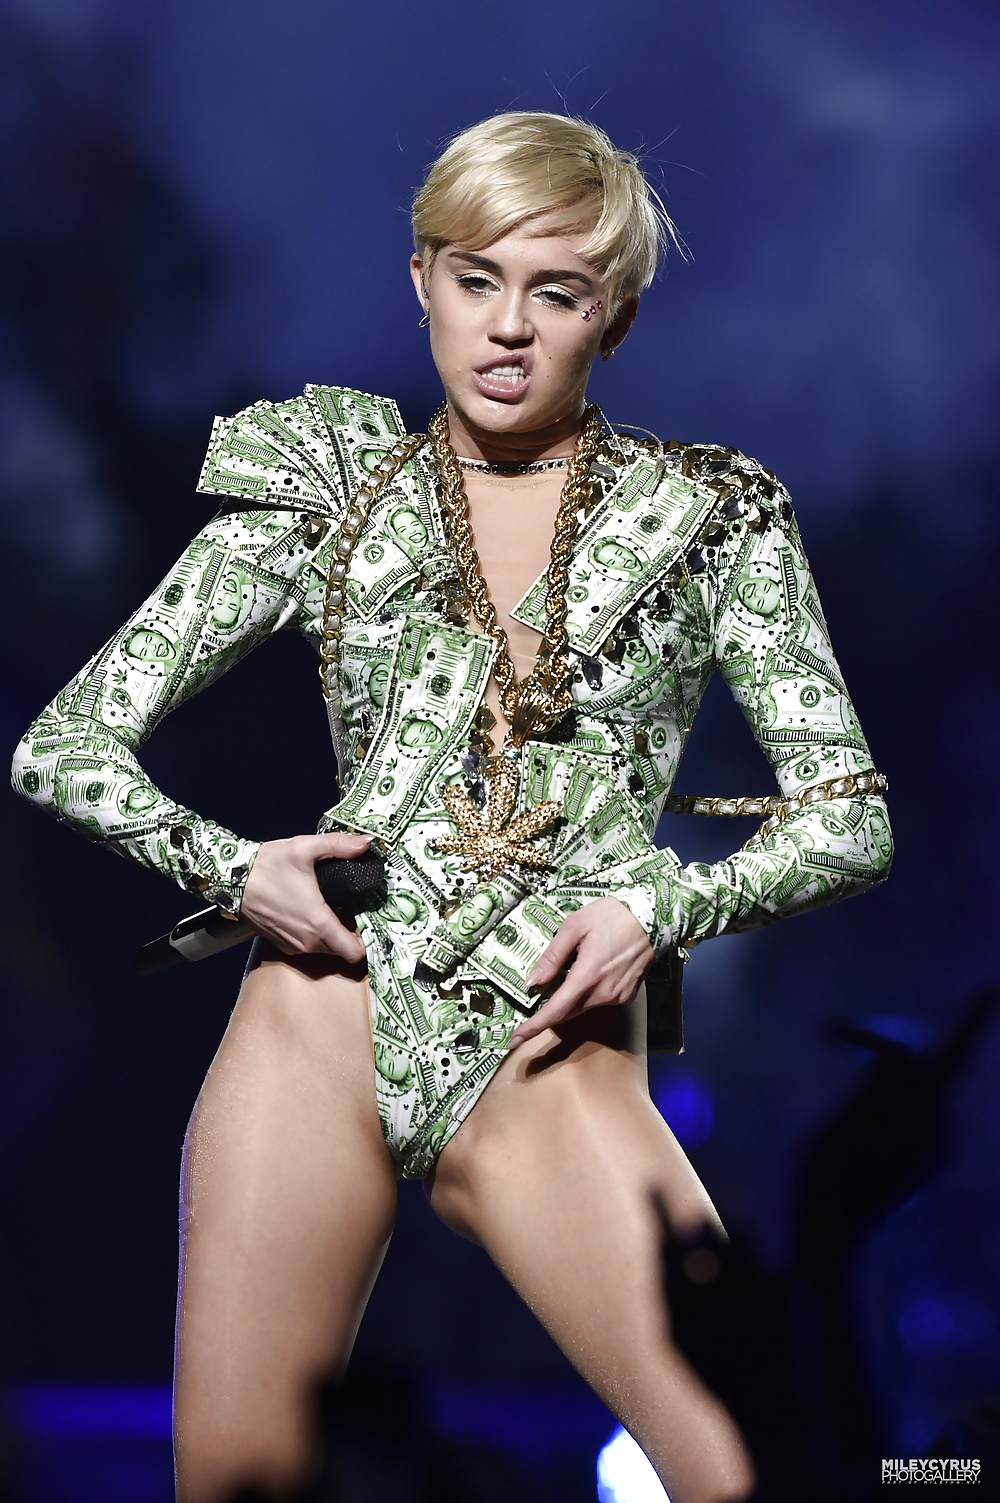 sluts-pictures-miley-cyrus-hot-you-free